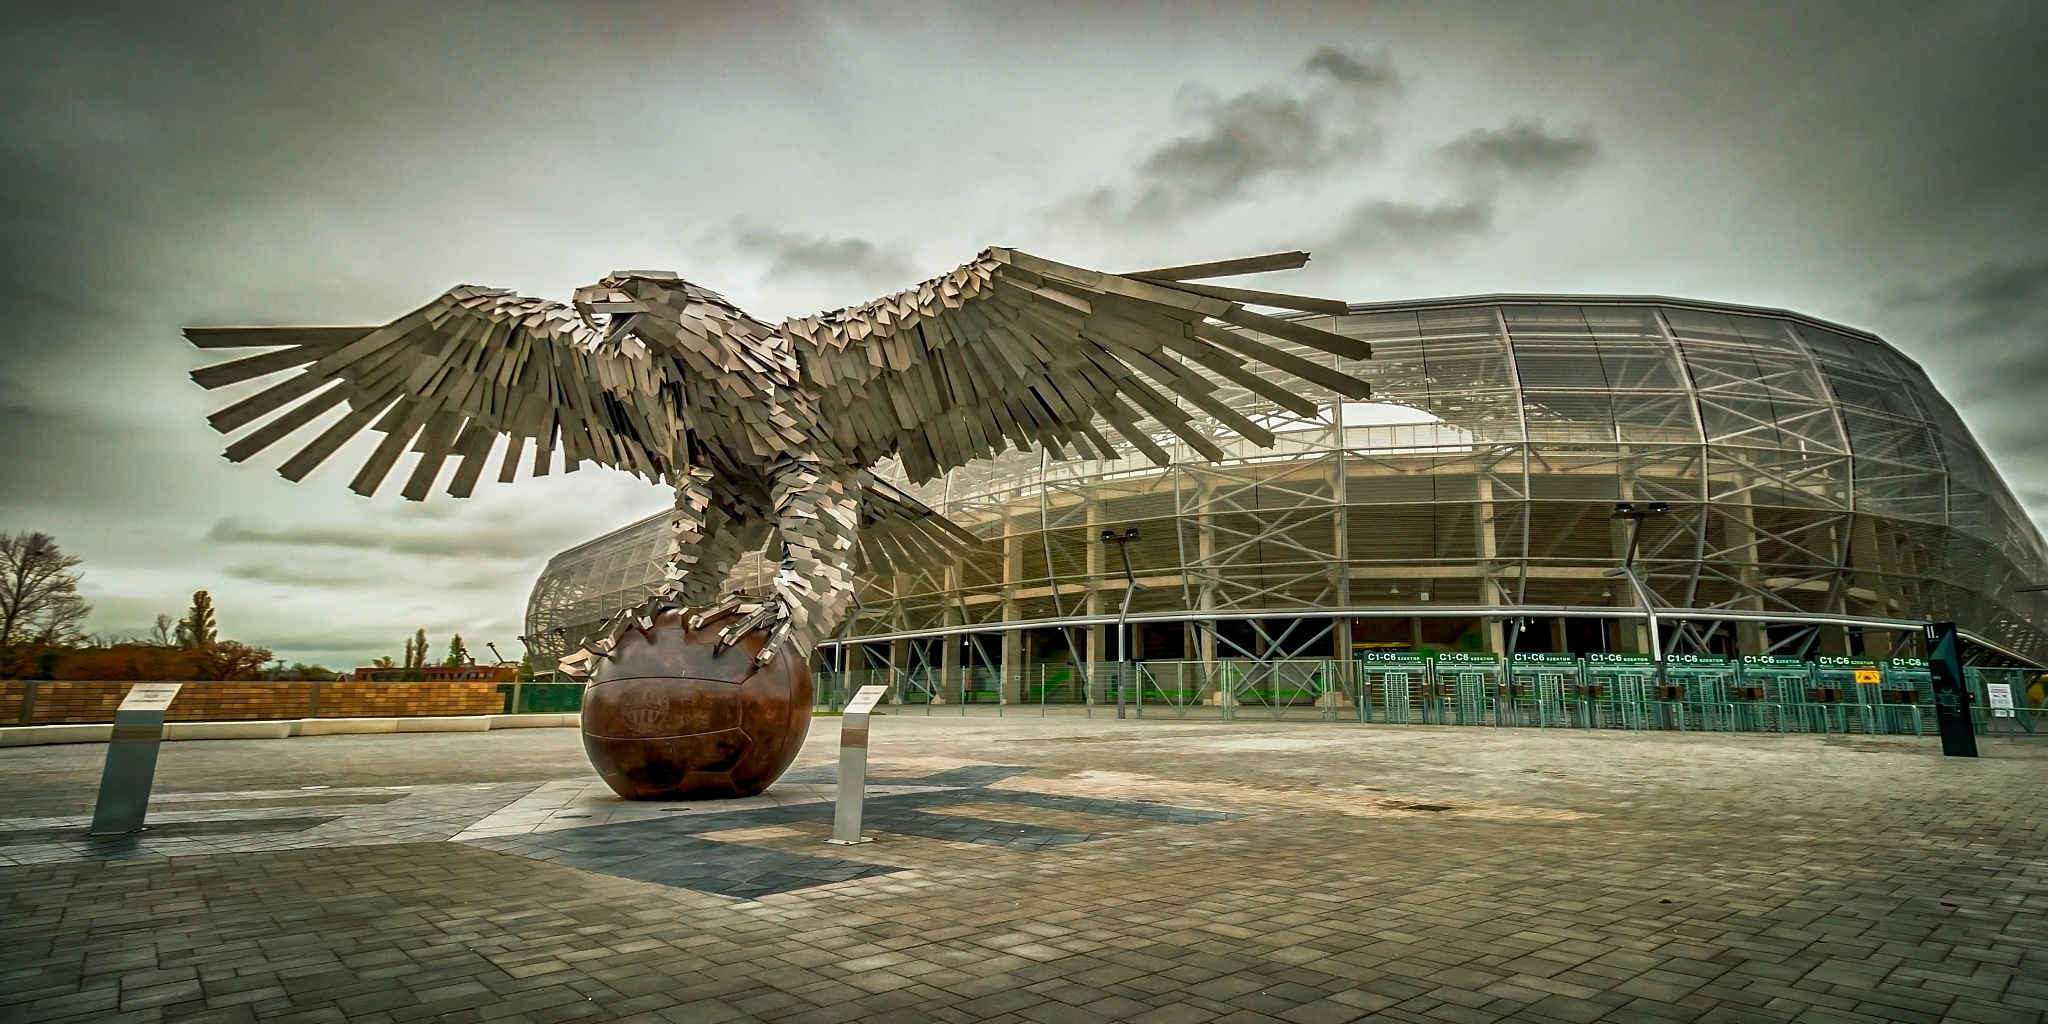 Budapest, Groupama Arena and the Eagle sculpture by metaltibor